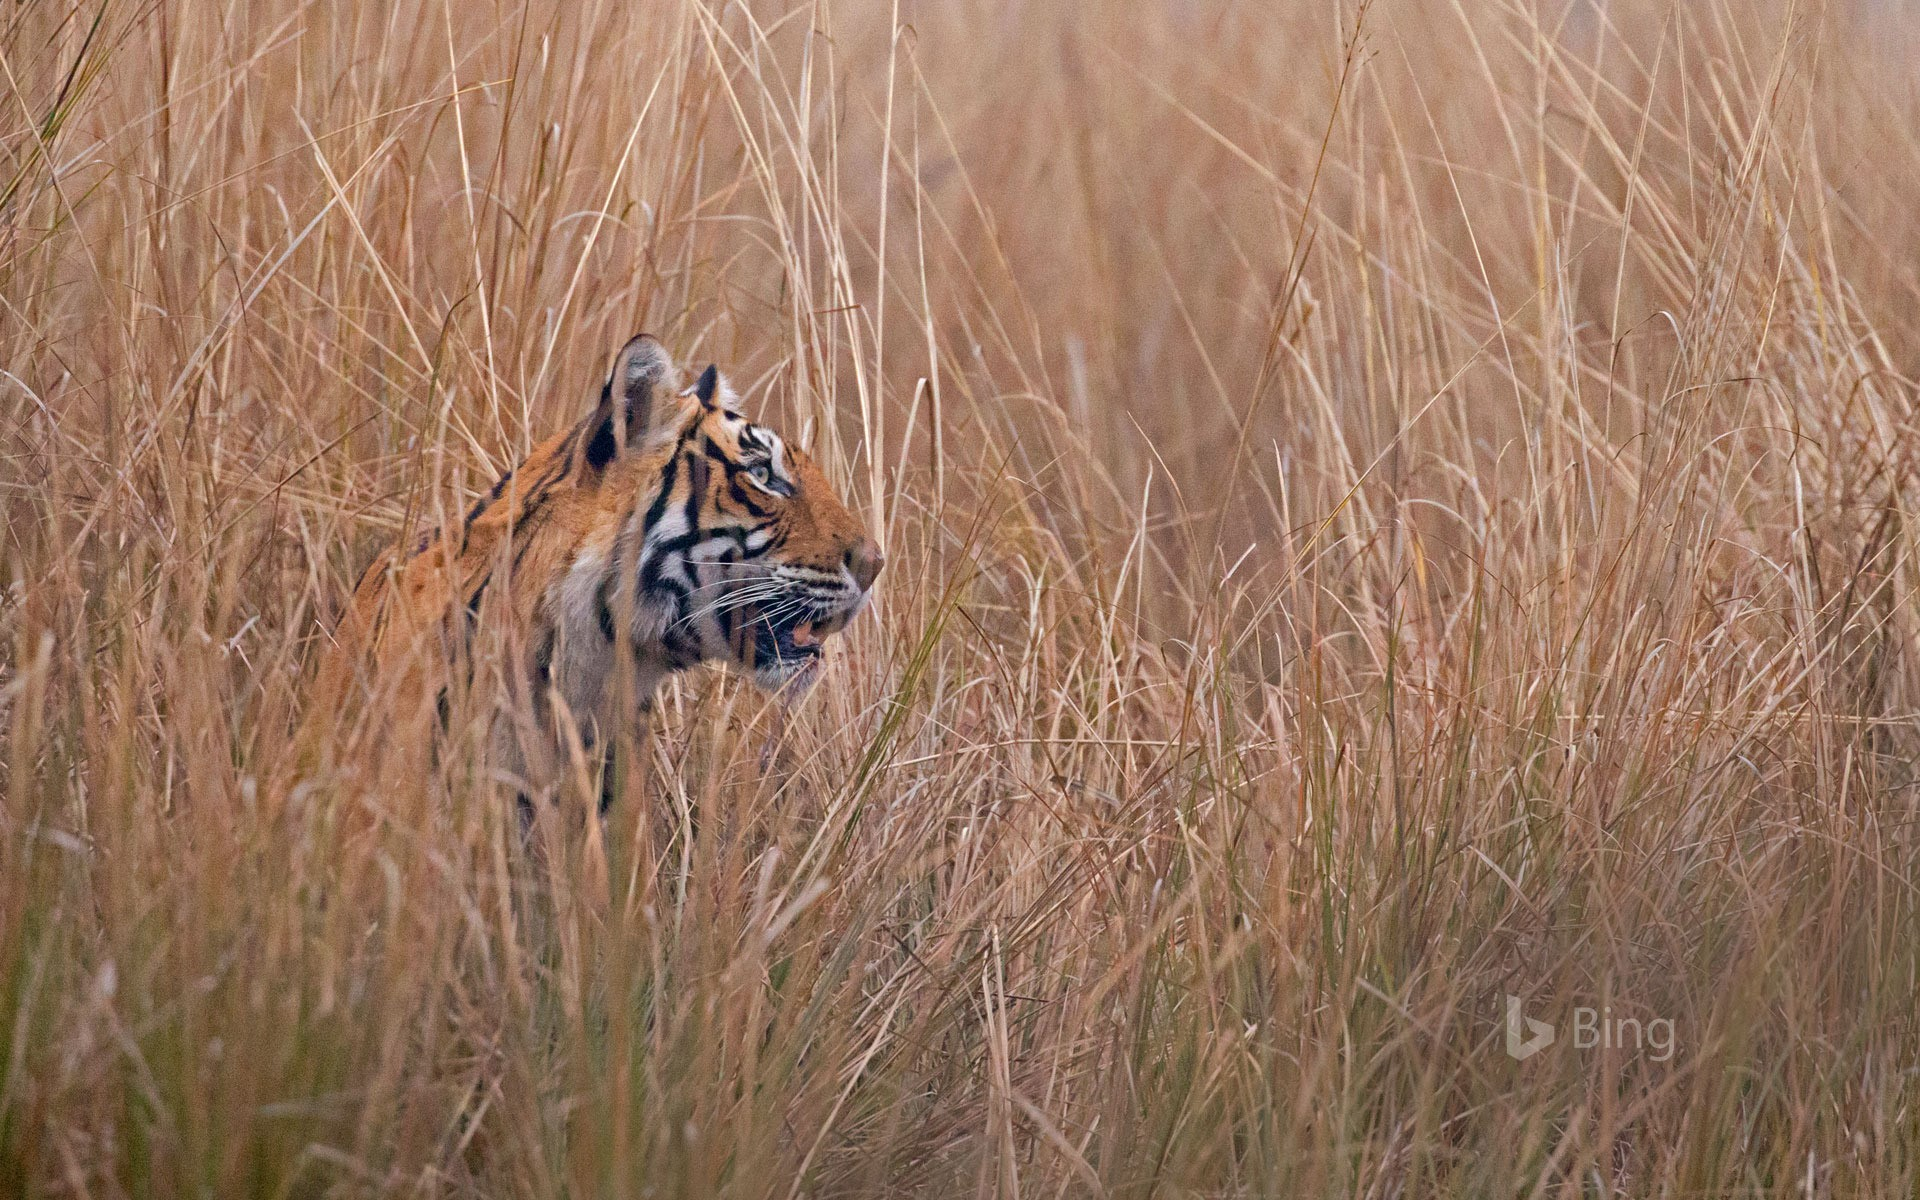 A Bengal tiger called 'Krishna' or 'T19' in Ranthambore National Park, India